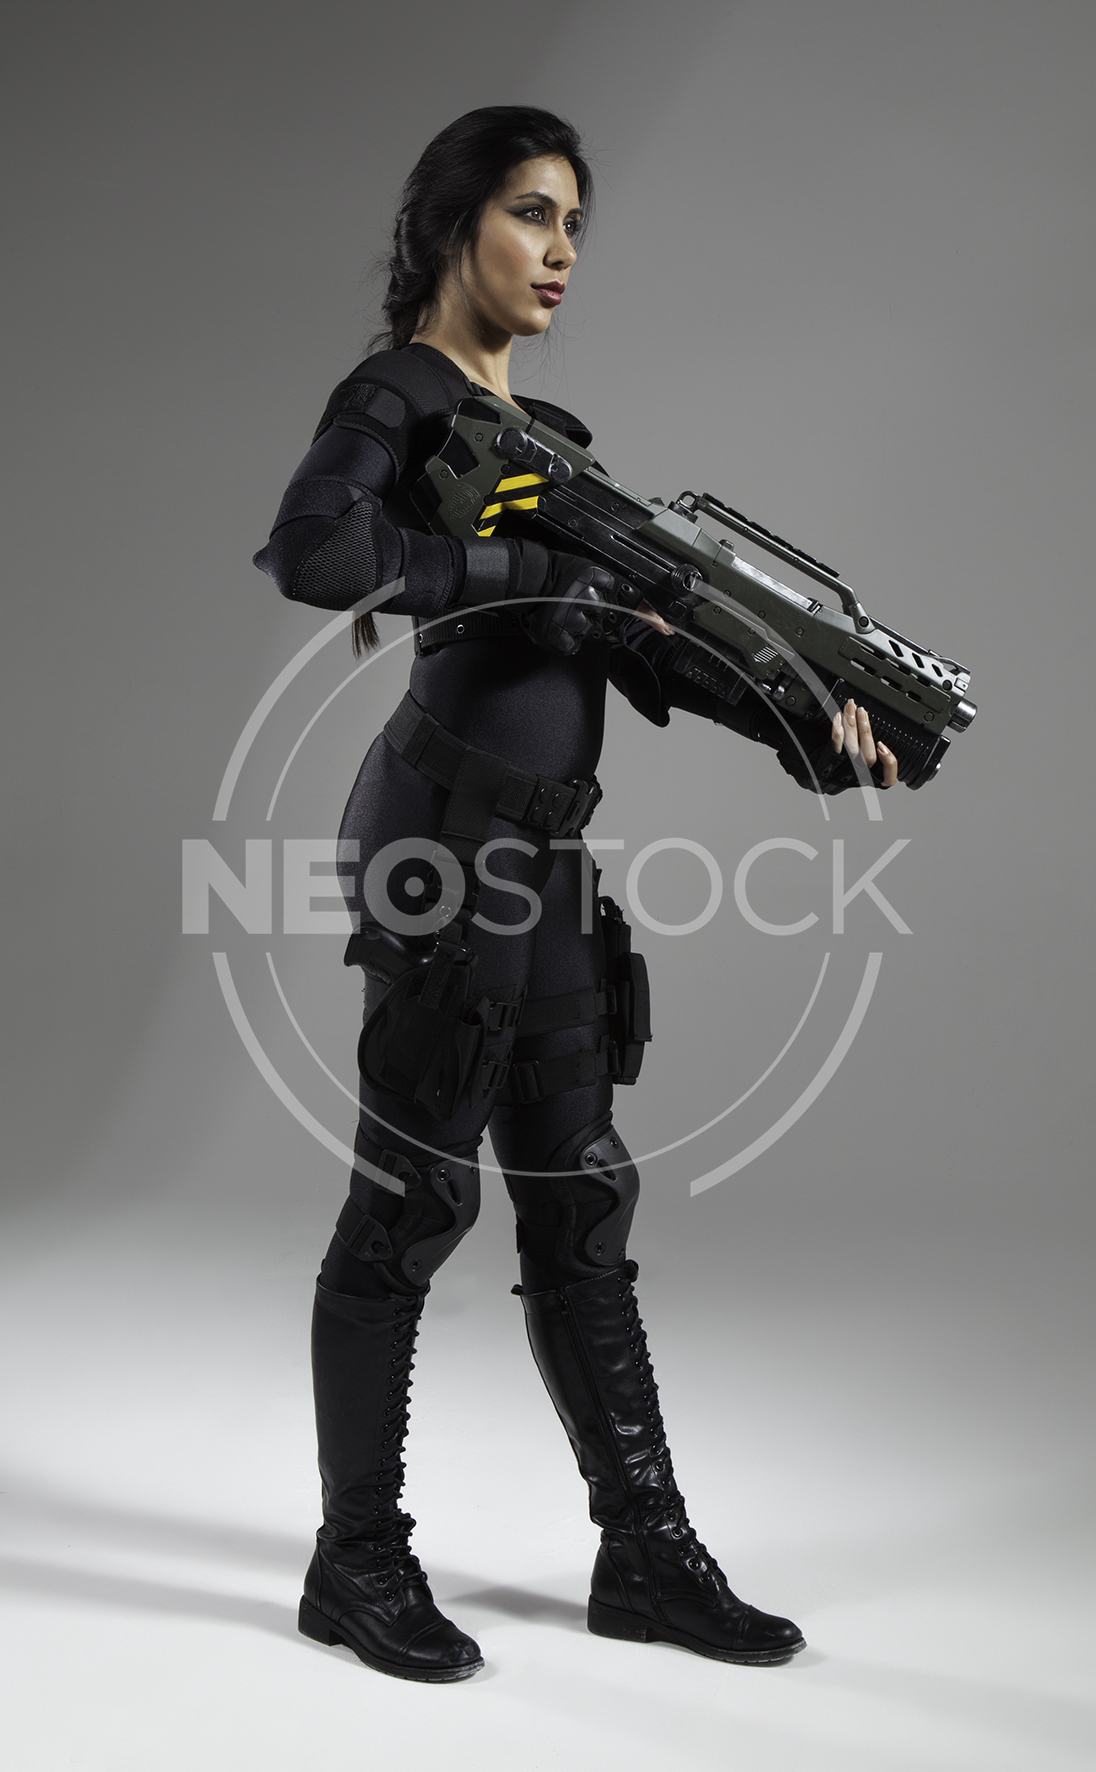 NeoStock - Nisha Future Cop II - Stock Photography